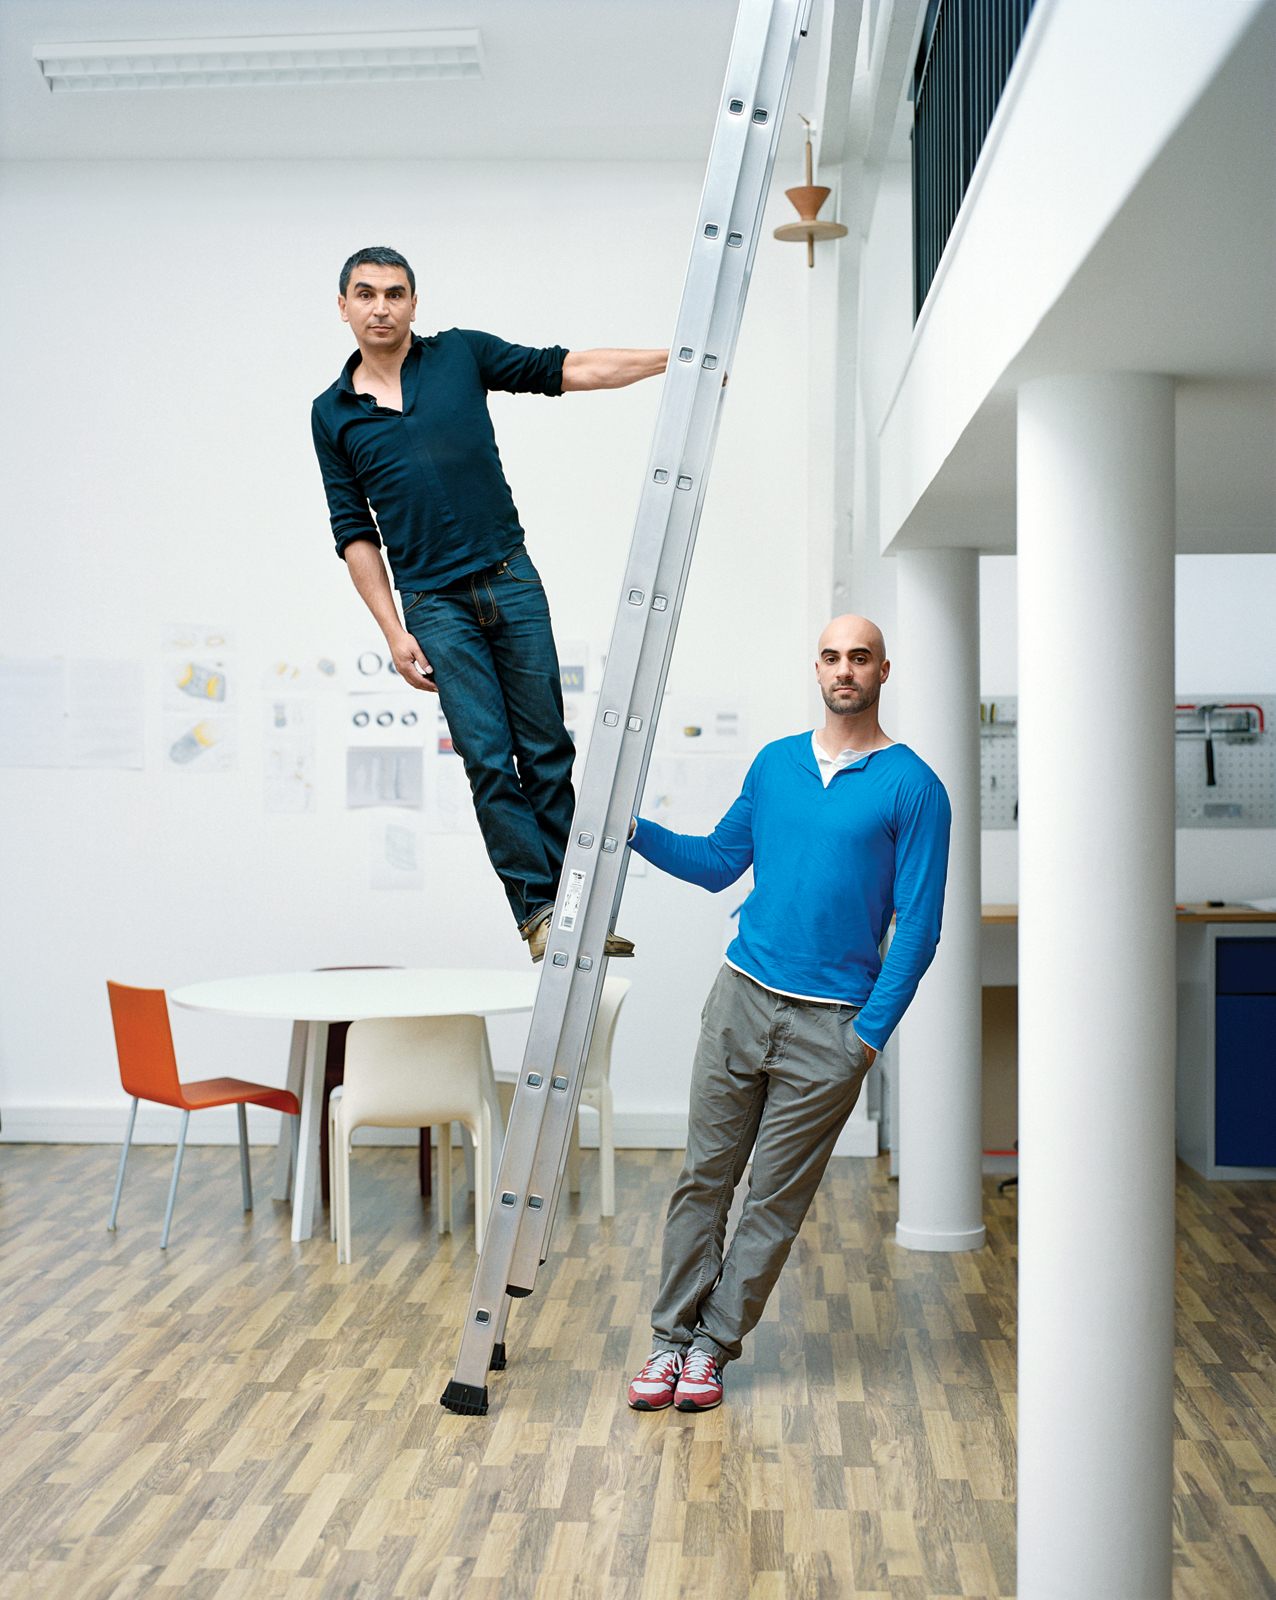 Jean-François Dingjian and Eloi Chafaï of Normal Studio